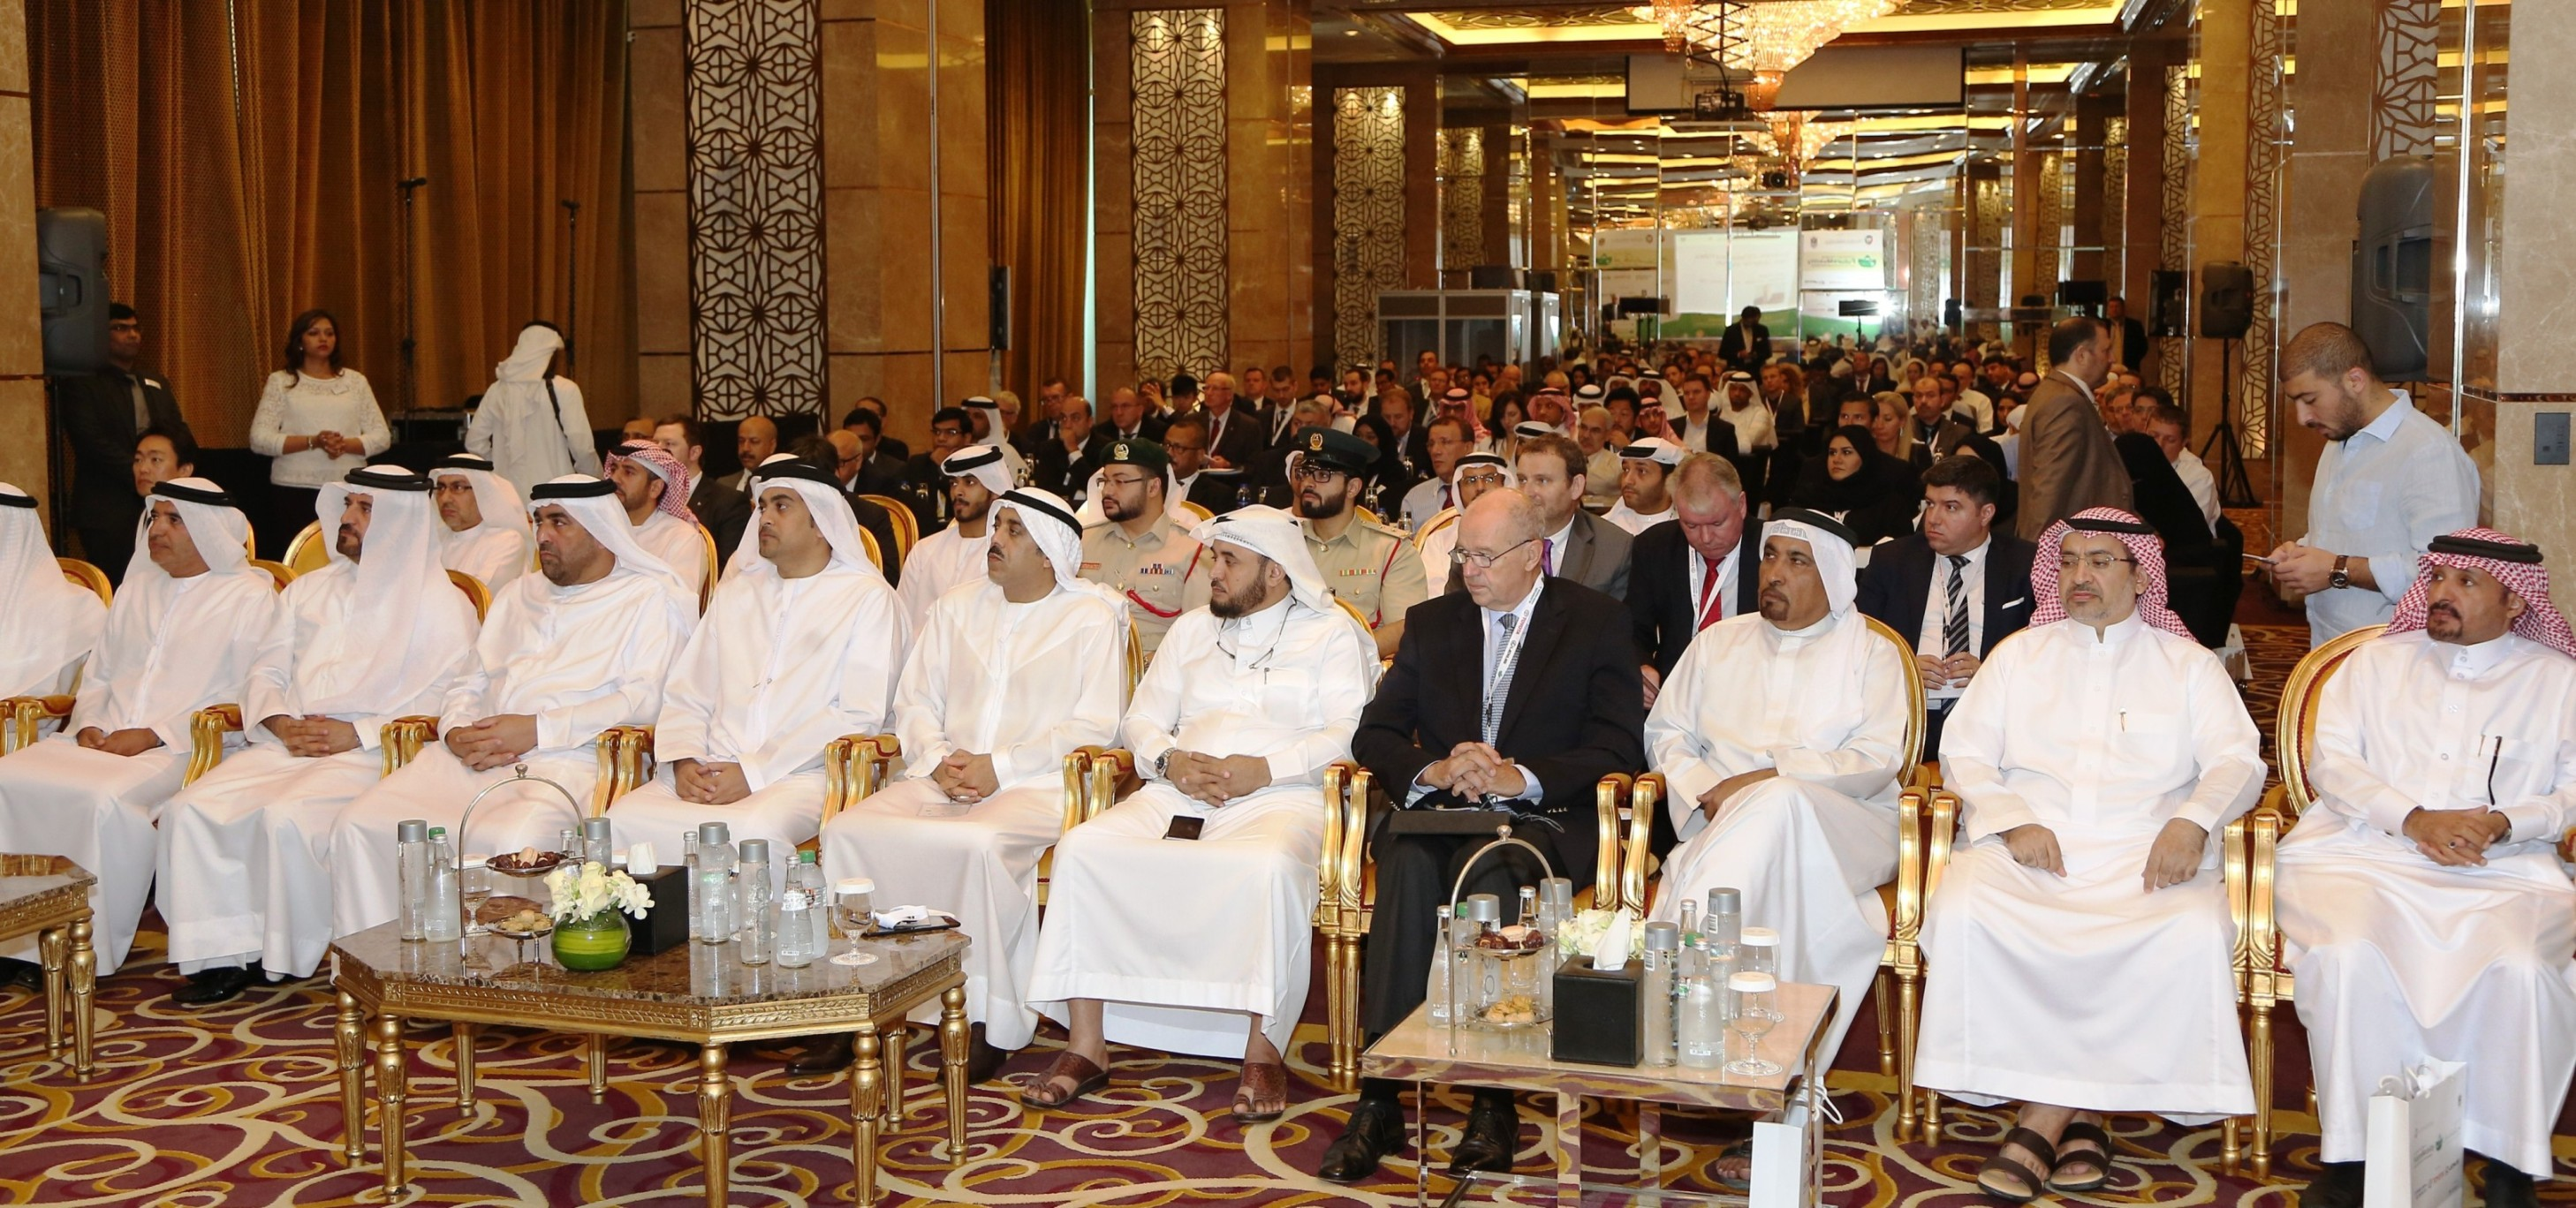 Industry Leaders Gather at ICFM 2015